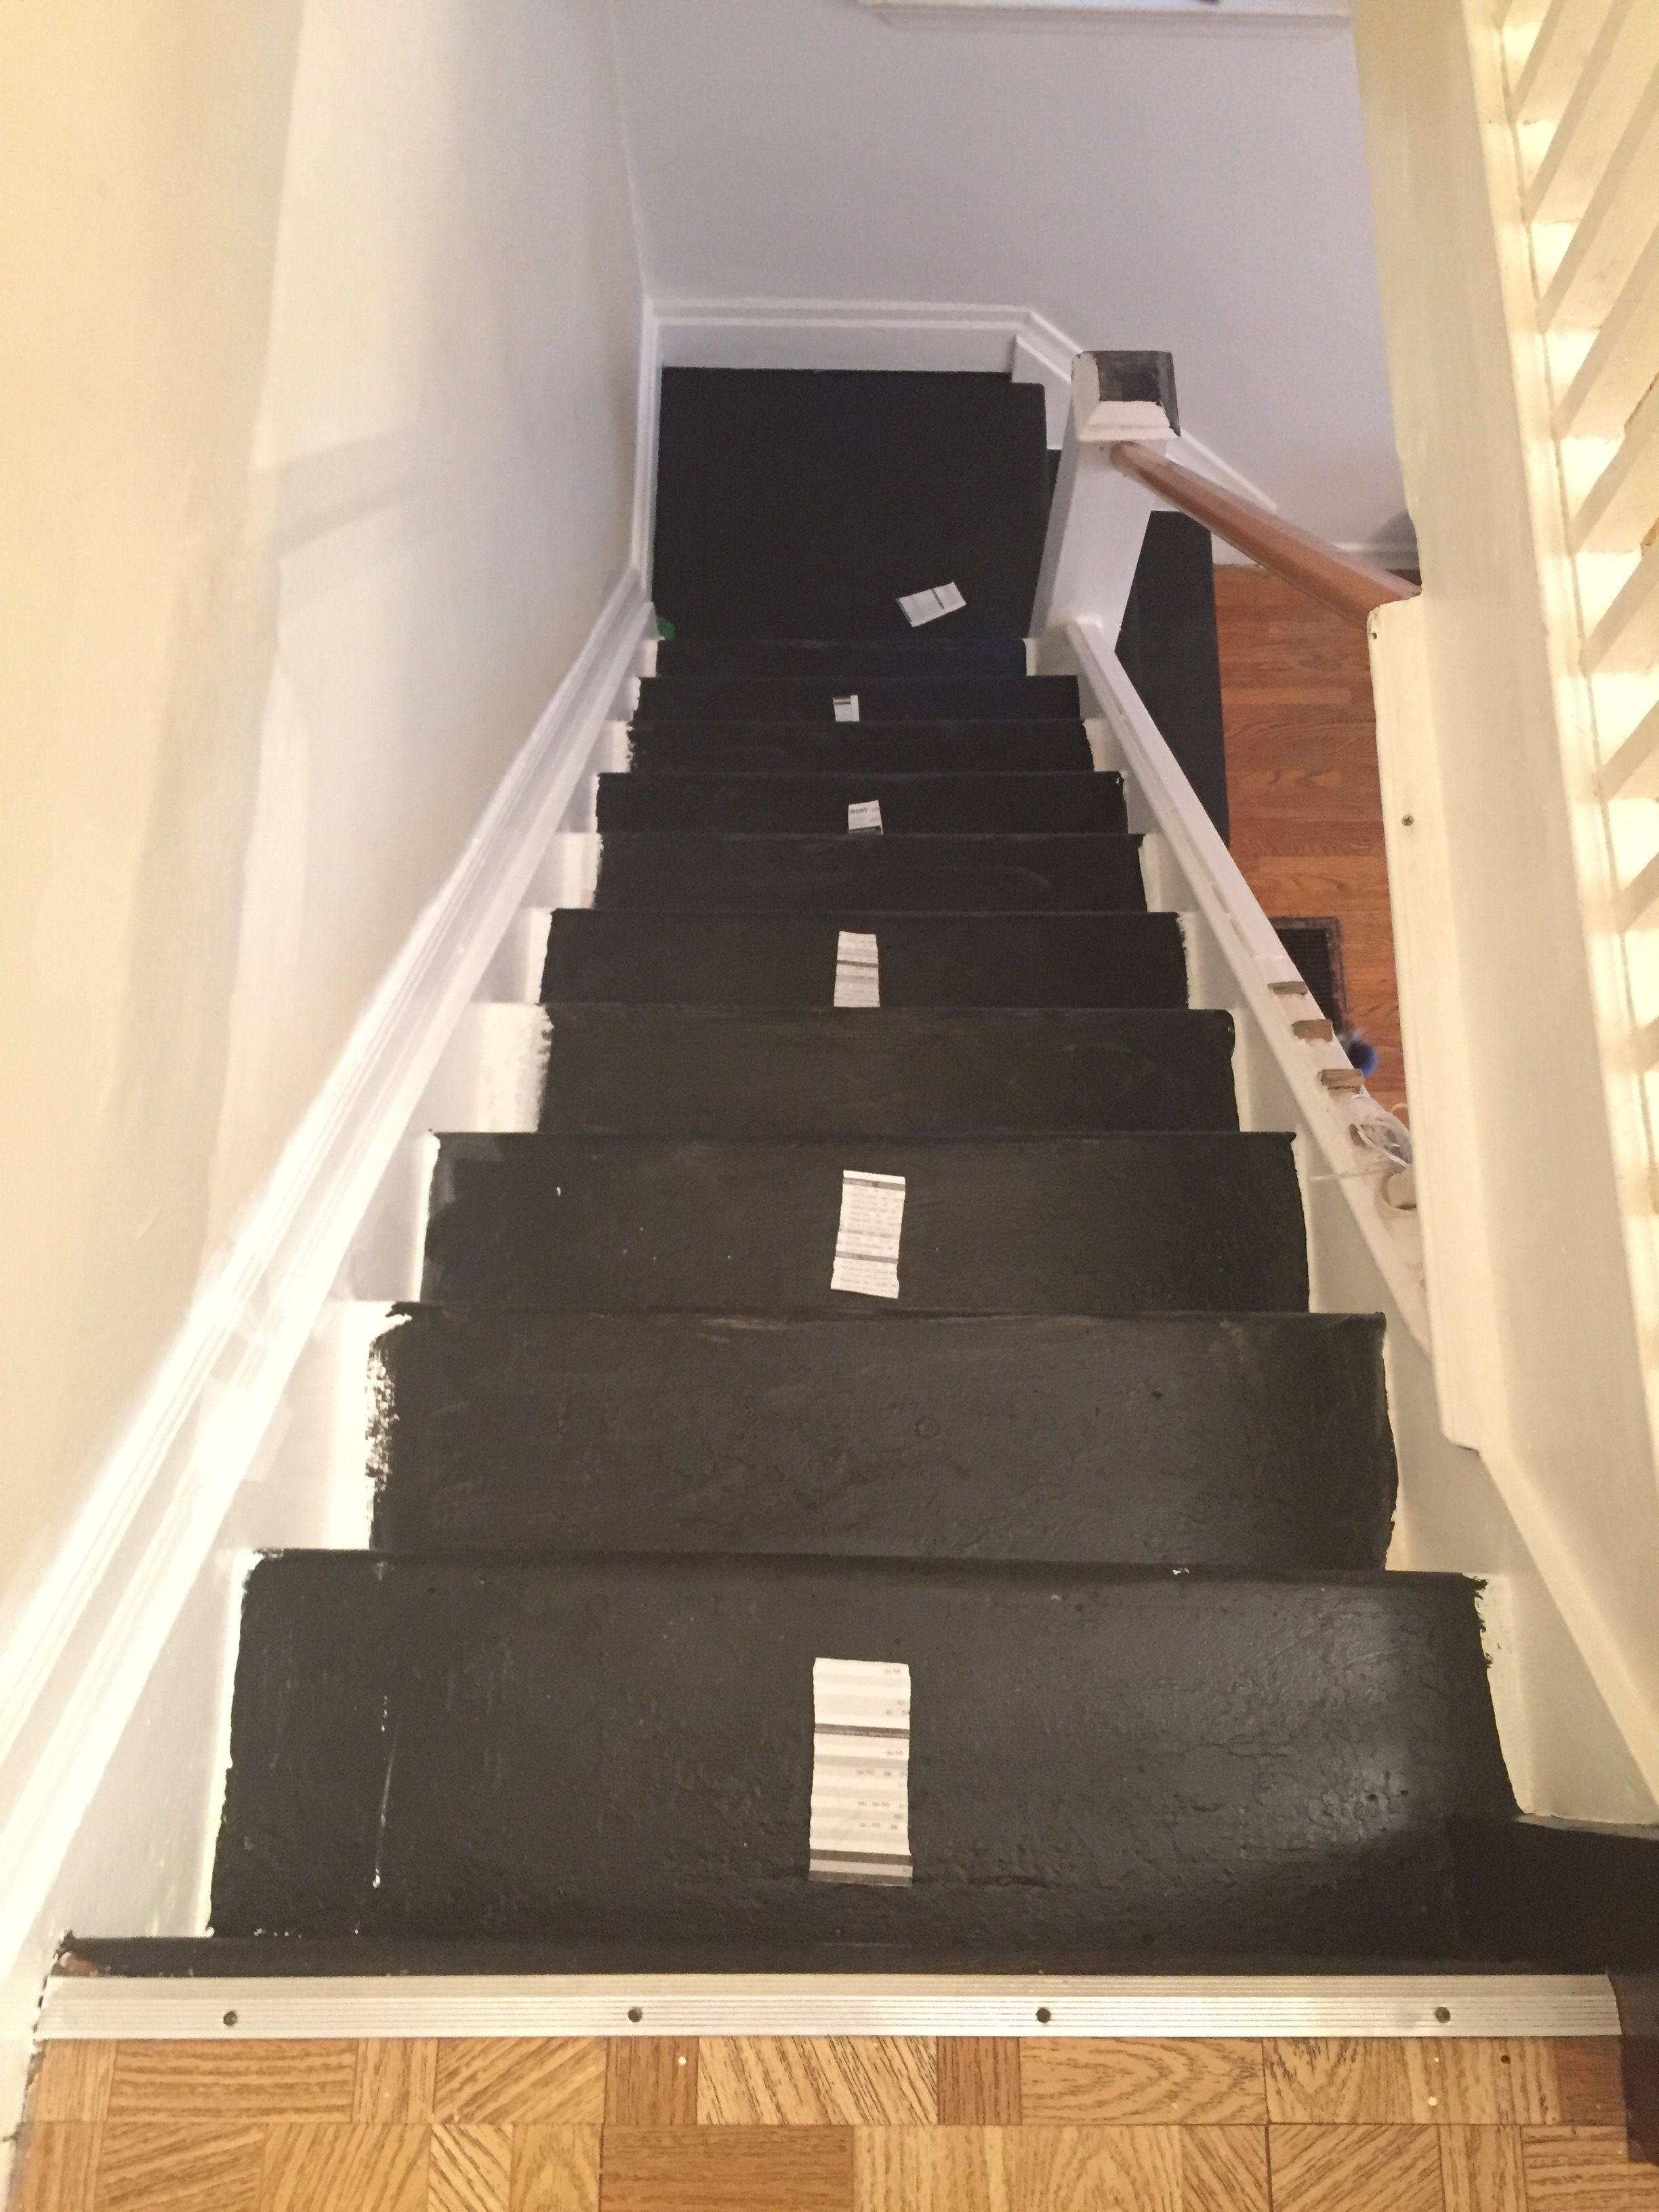 lesley-metcalfe-all-stairs-painted-black-at-top-looking-down.JPG